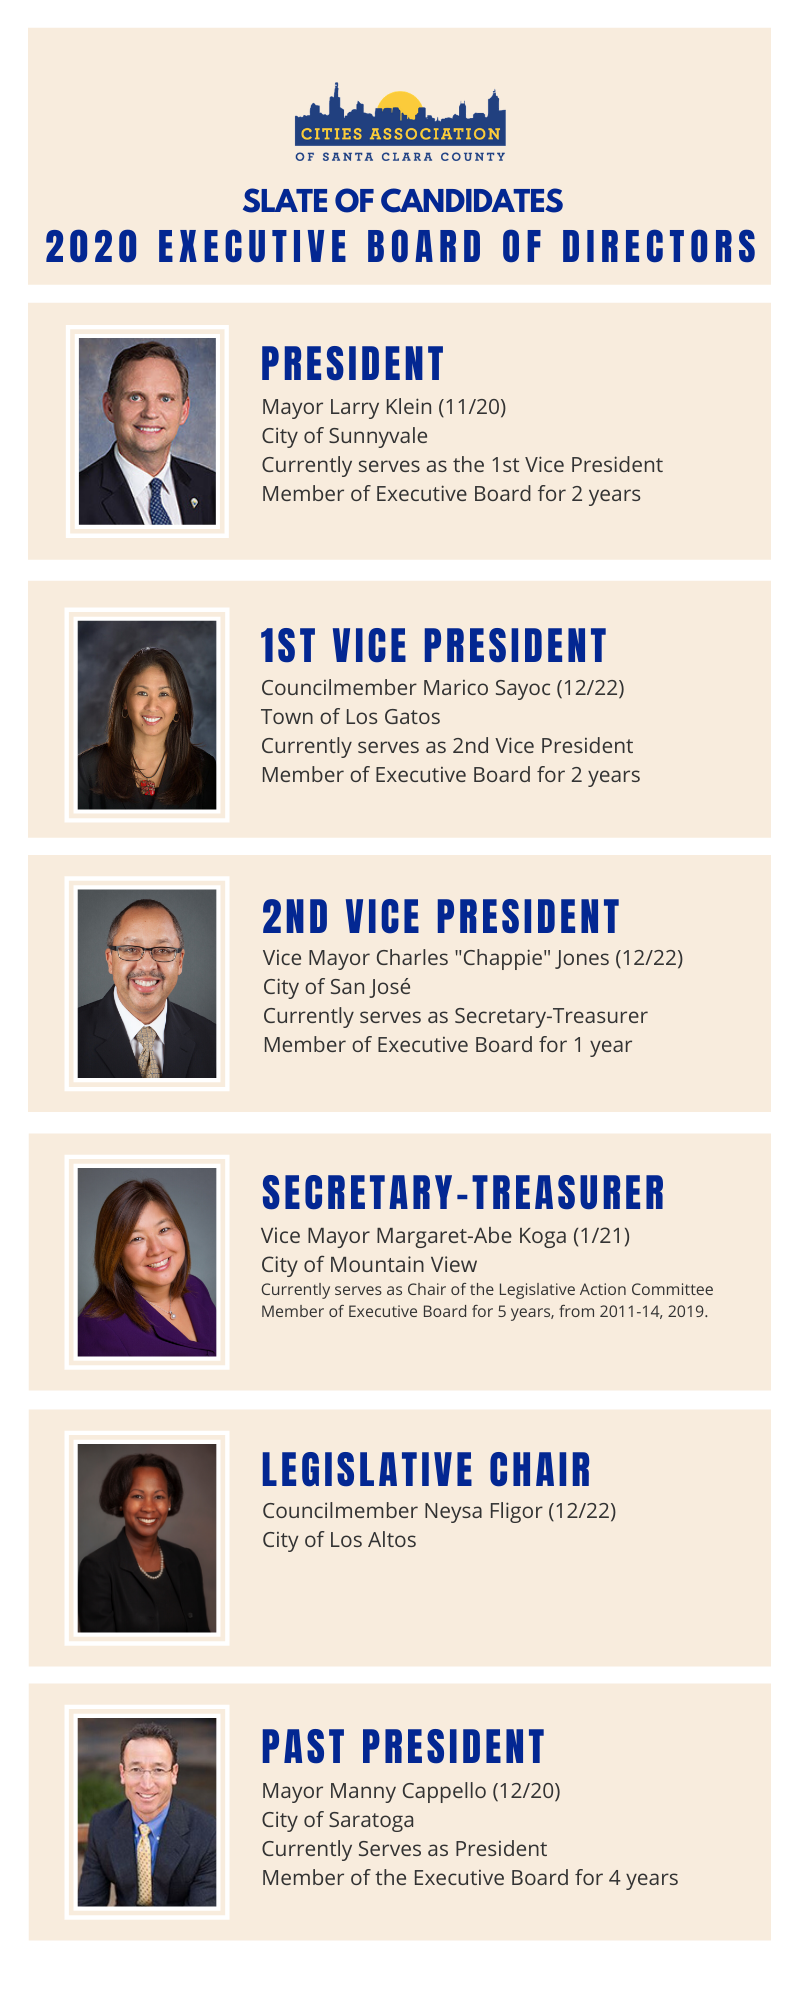 2020 Executive Board Slate of Candidates